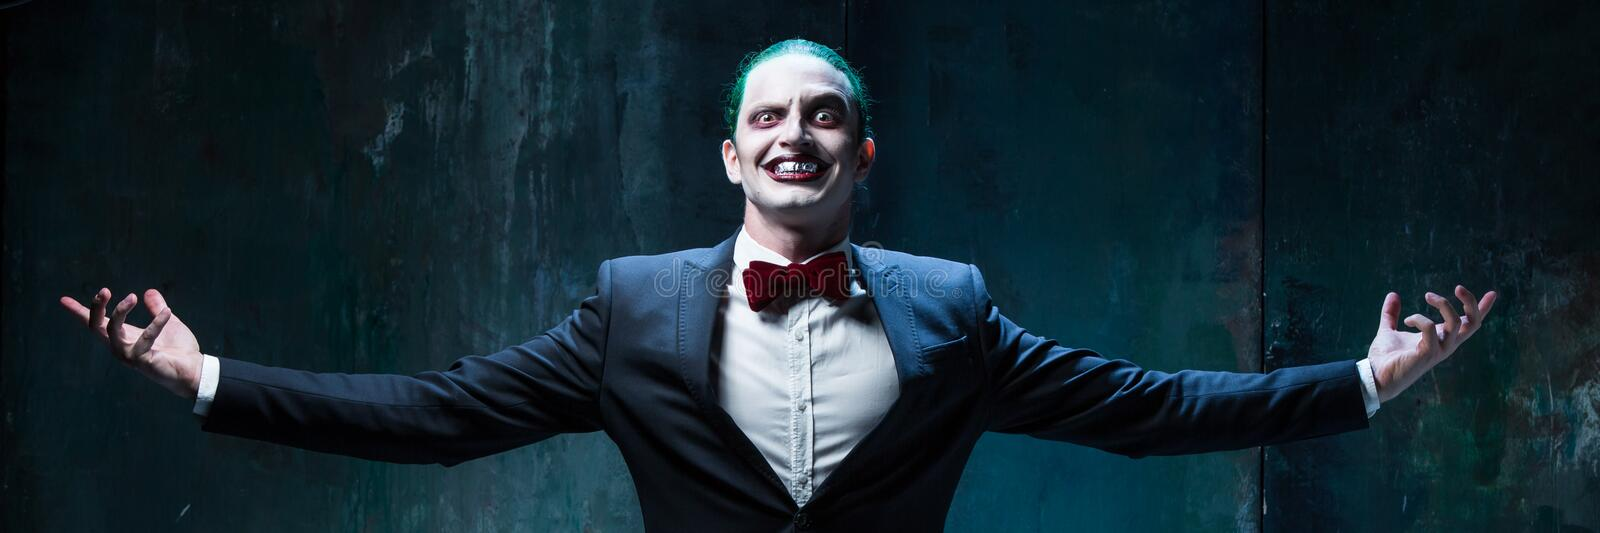 download bloody halloween theme crazy joker face stock photo image of fool circus